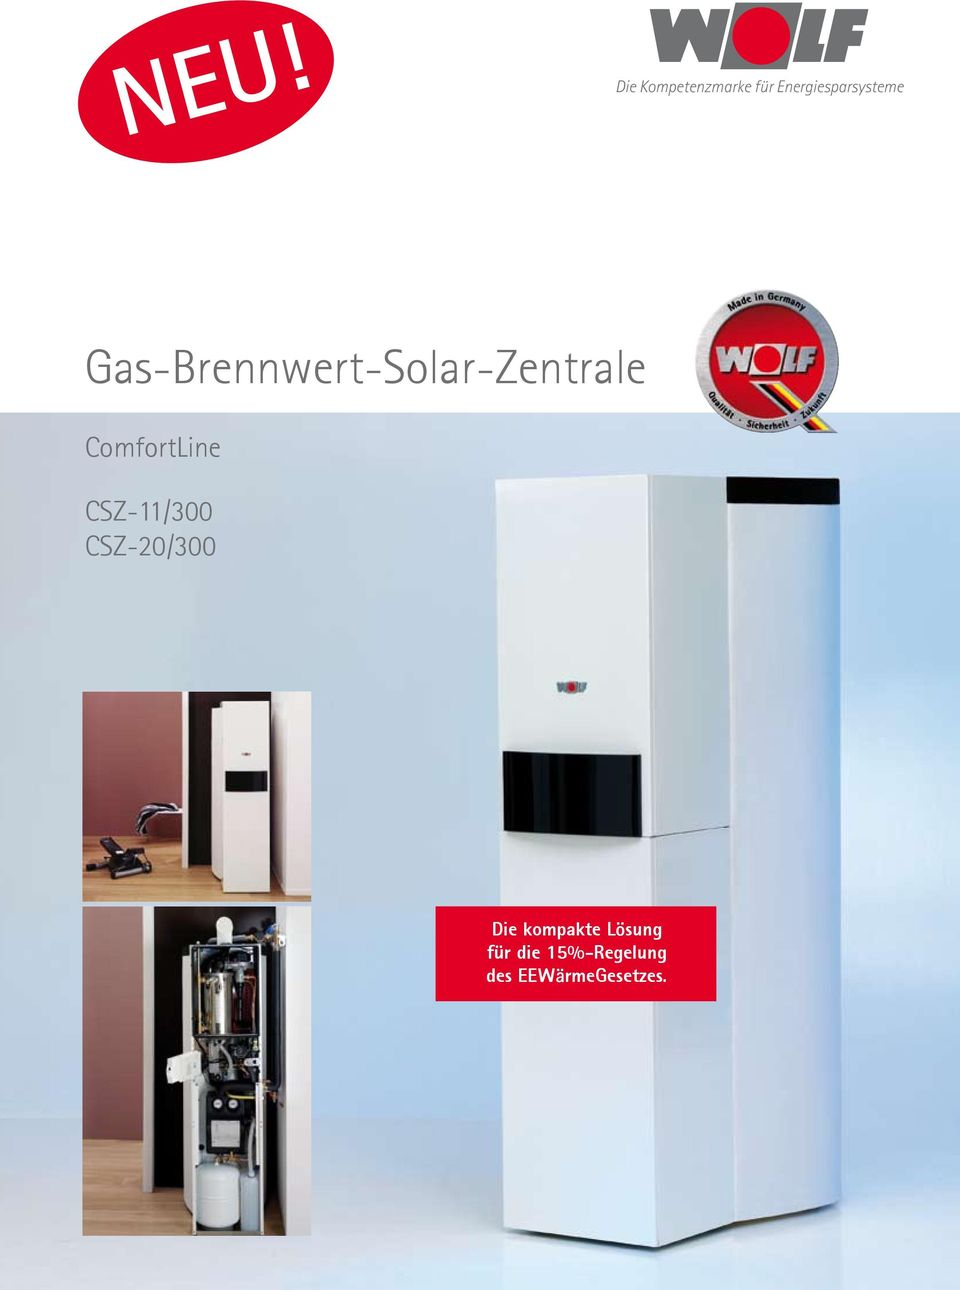 neu gas brennwert solar zentrale comfortline csz 11 300 csz 20 300 die kompakte l sung f r. Black Bedroom Furniture Sets. Home Design Ideas